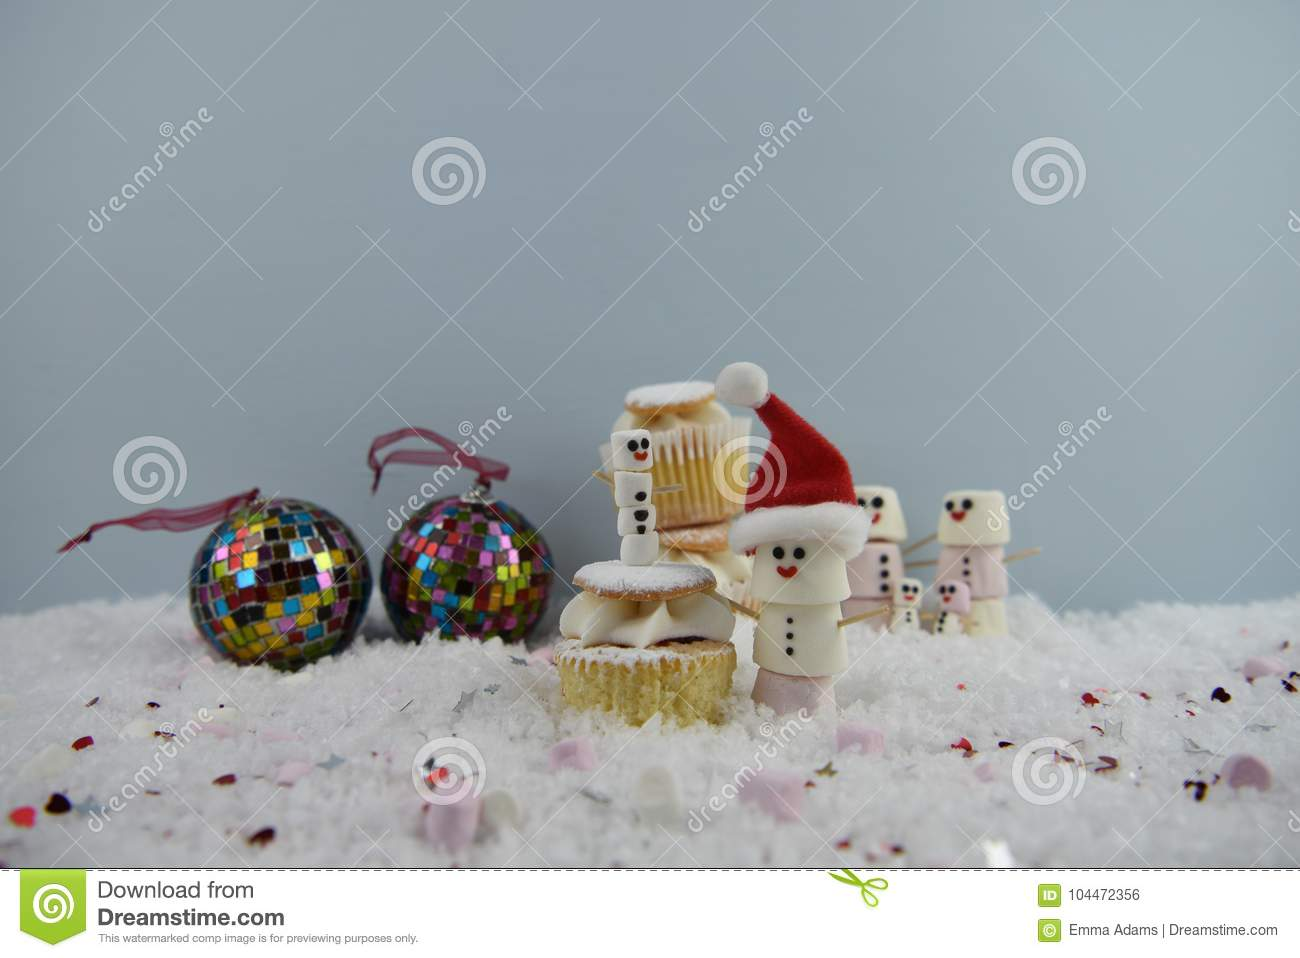 christmas food photography using marshmallows shaped as snowman and standing in snow with cream sponge fairy